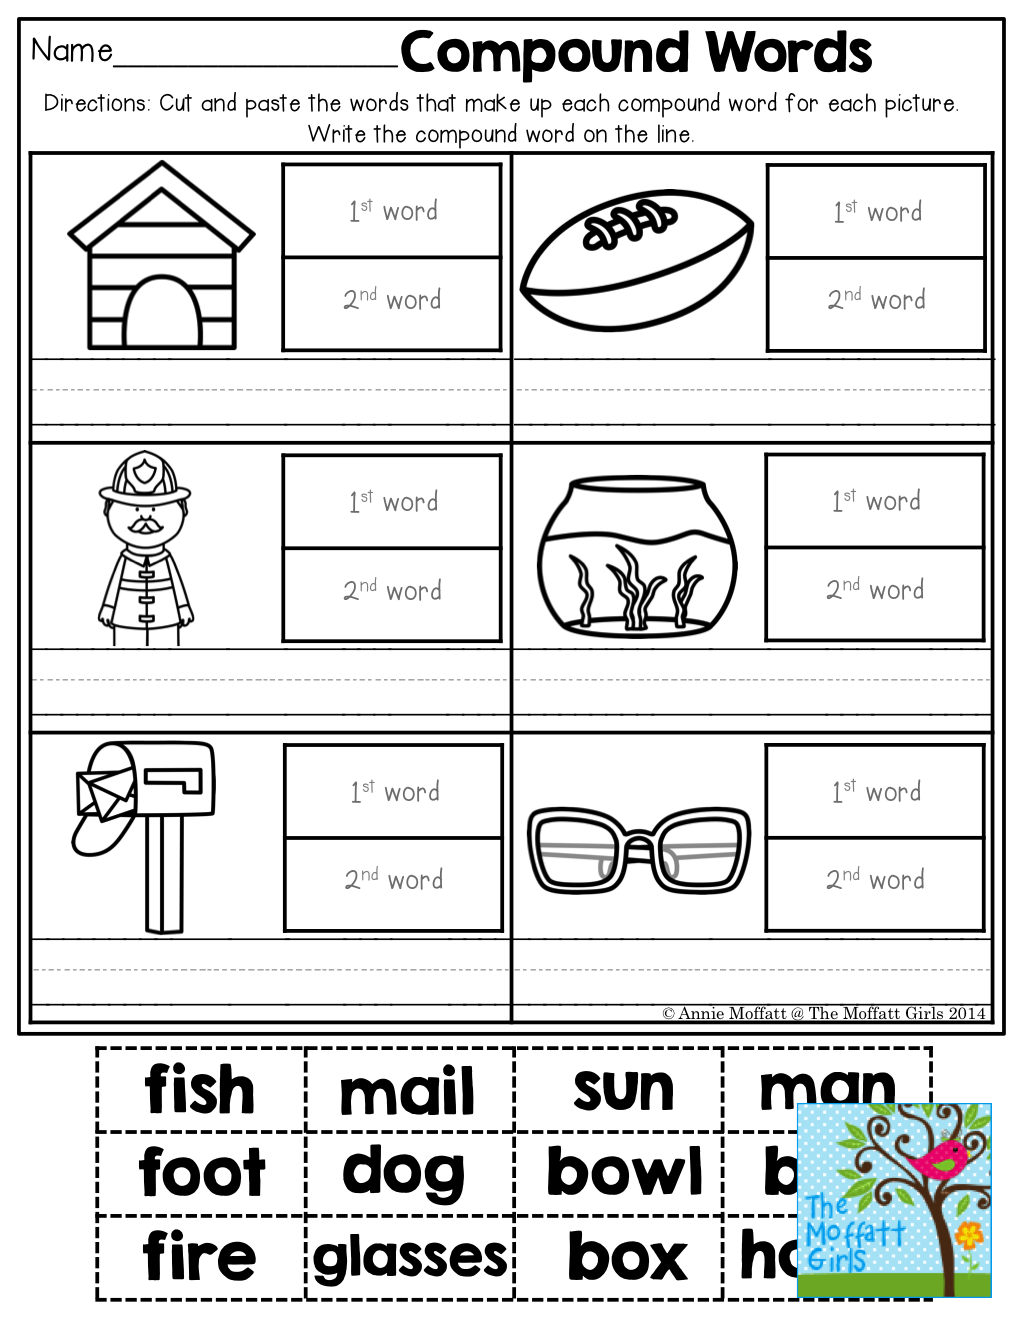 Compound Words And So Many More Fun Activities